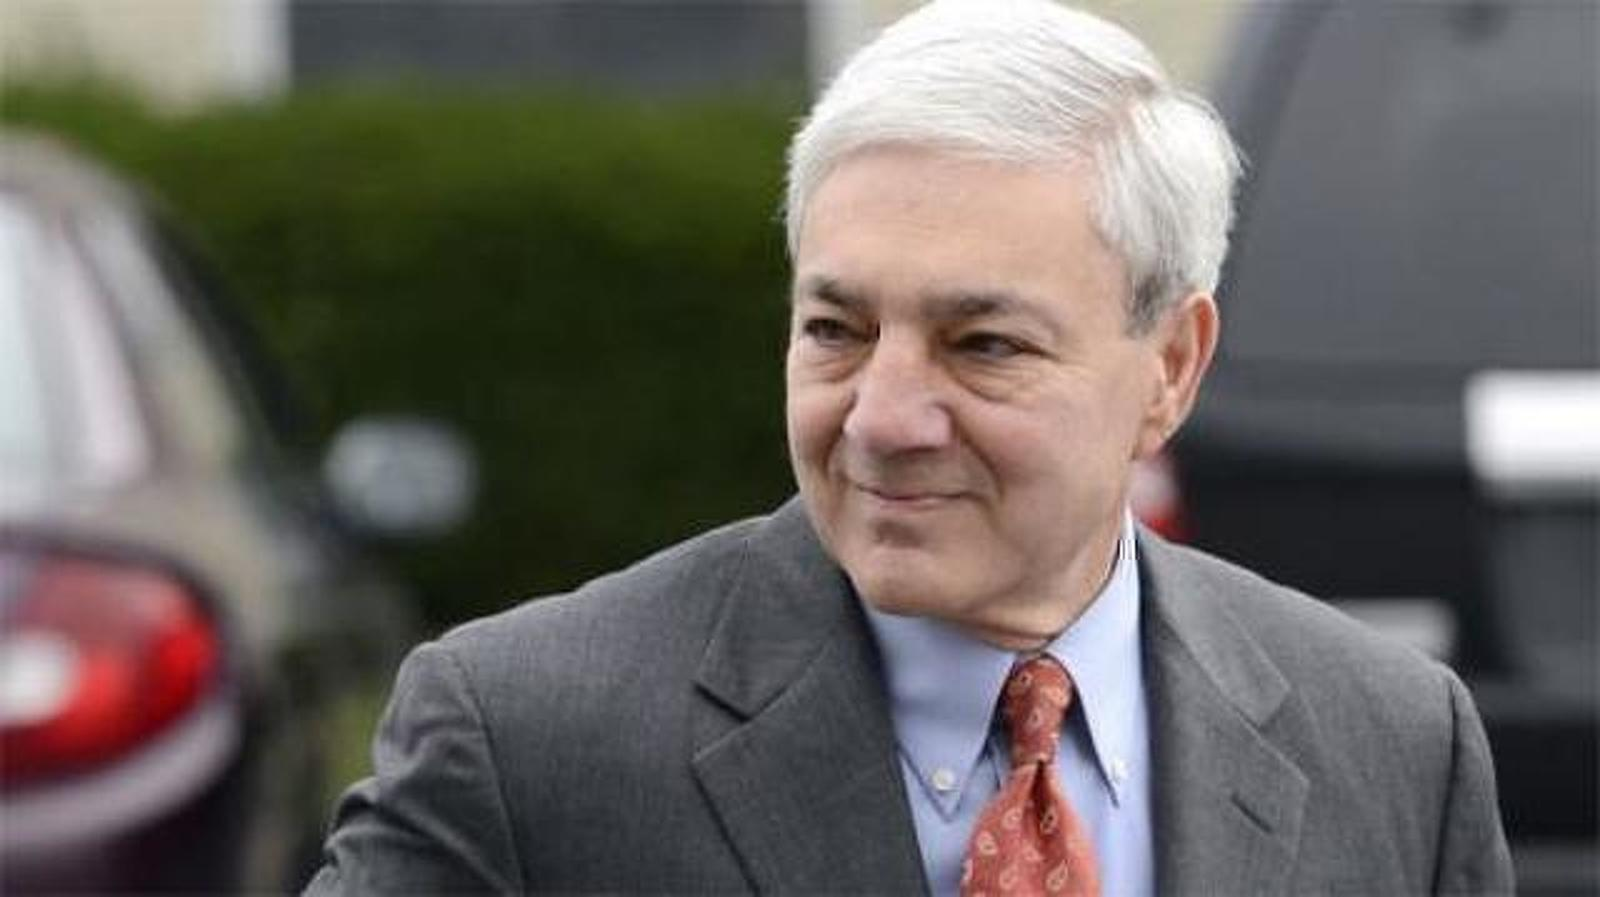 State College, PA - Spanier Won't Be Required to Report to